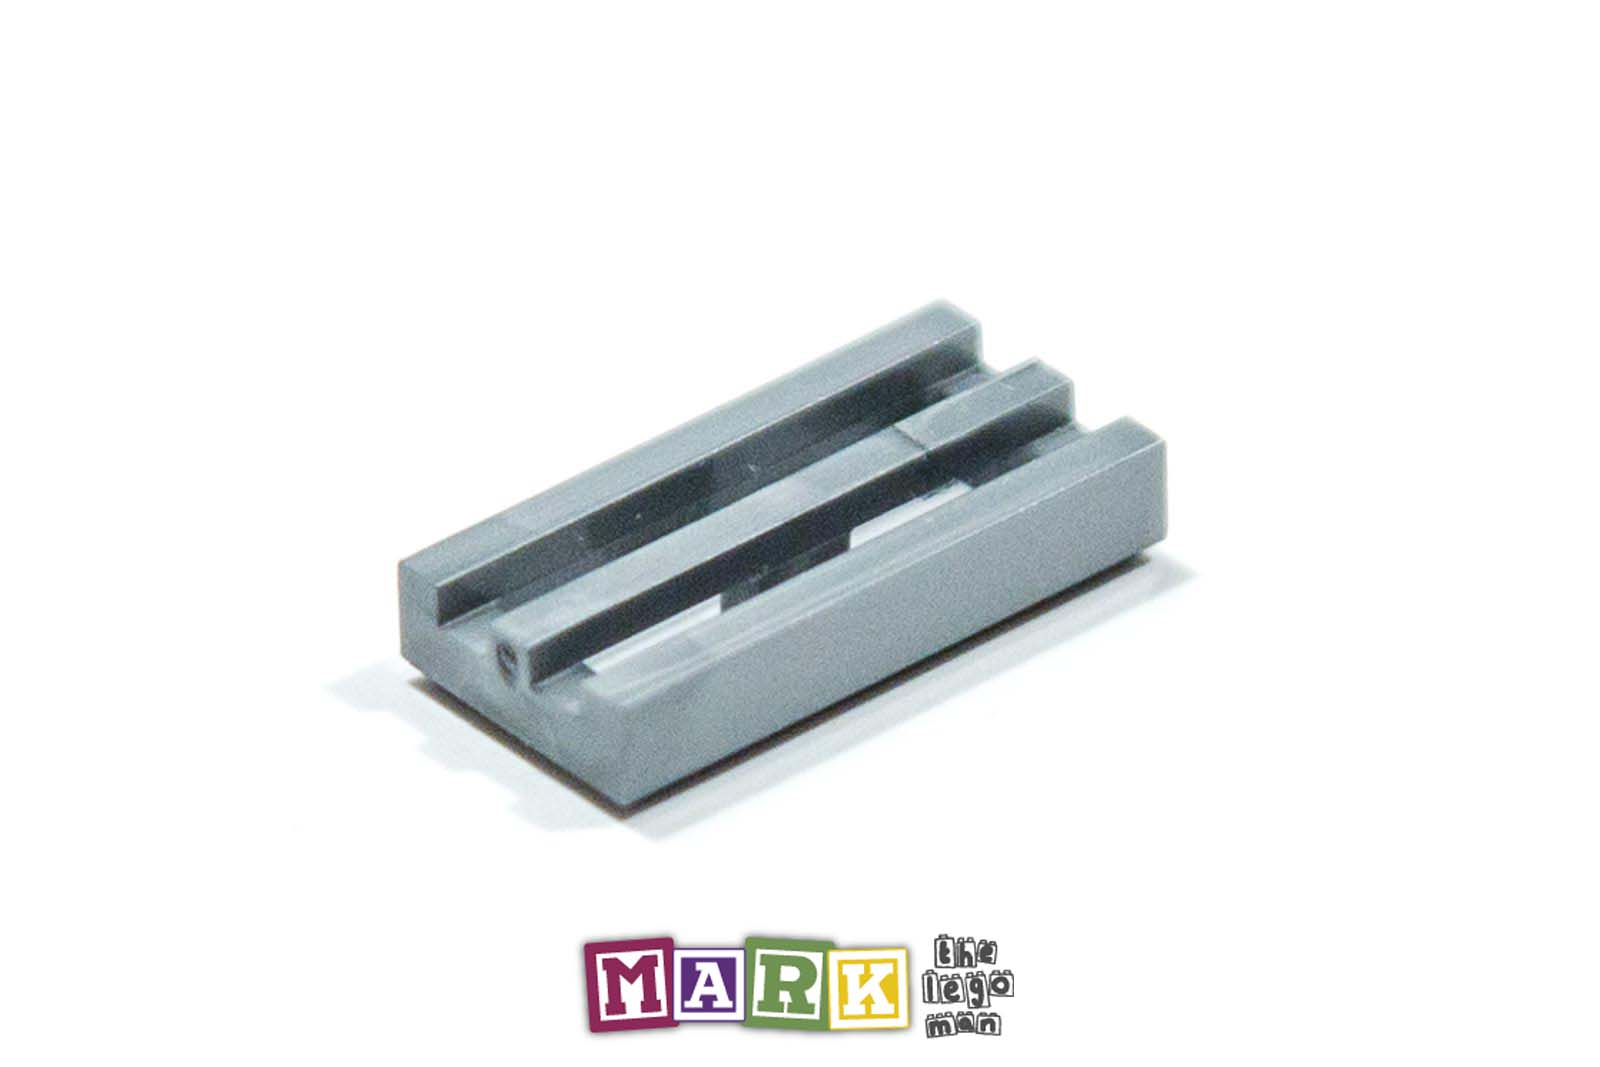 Lego Radiator new lego 2412 silver metal radiator grille 1×2 4619636 | mad about